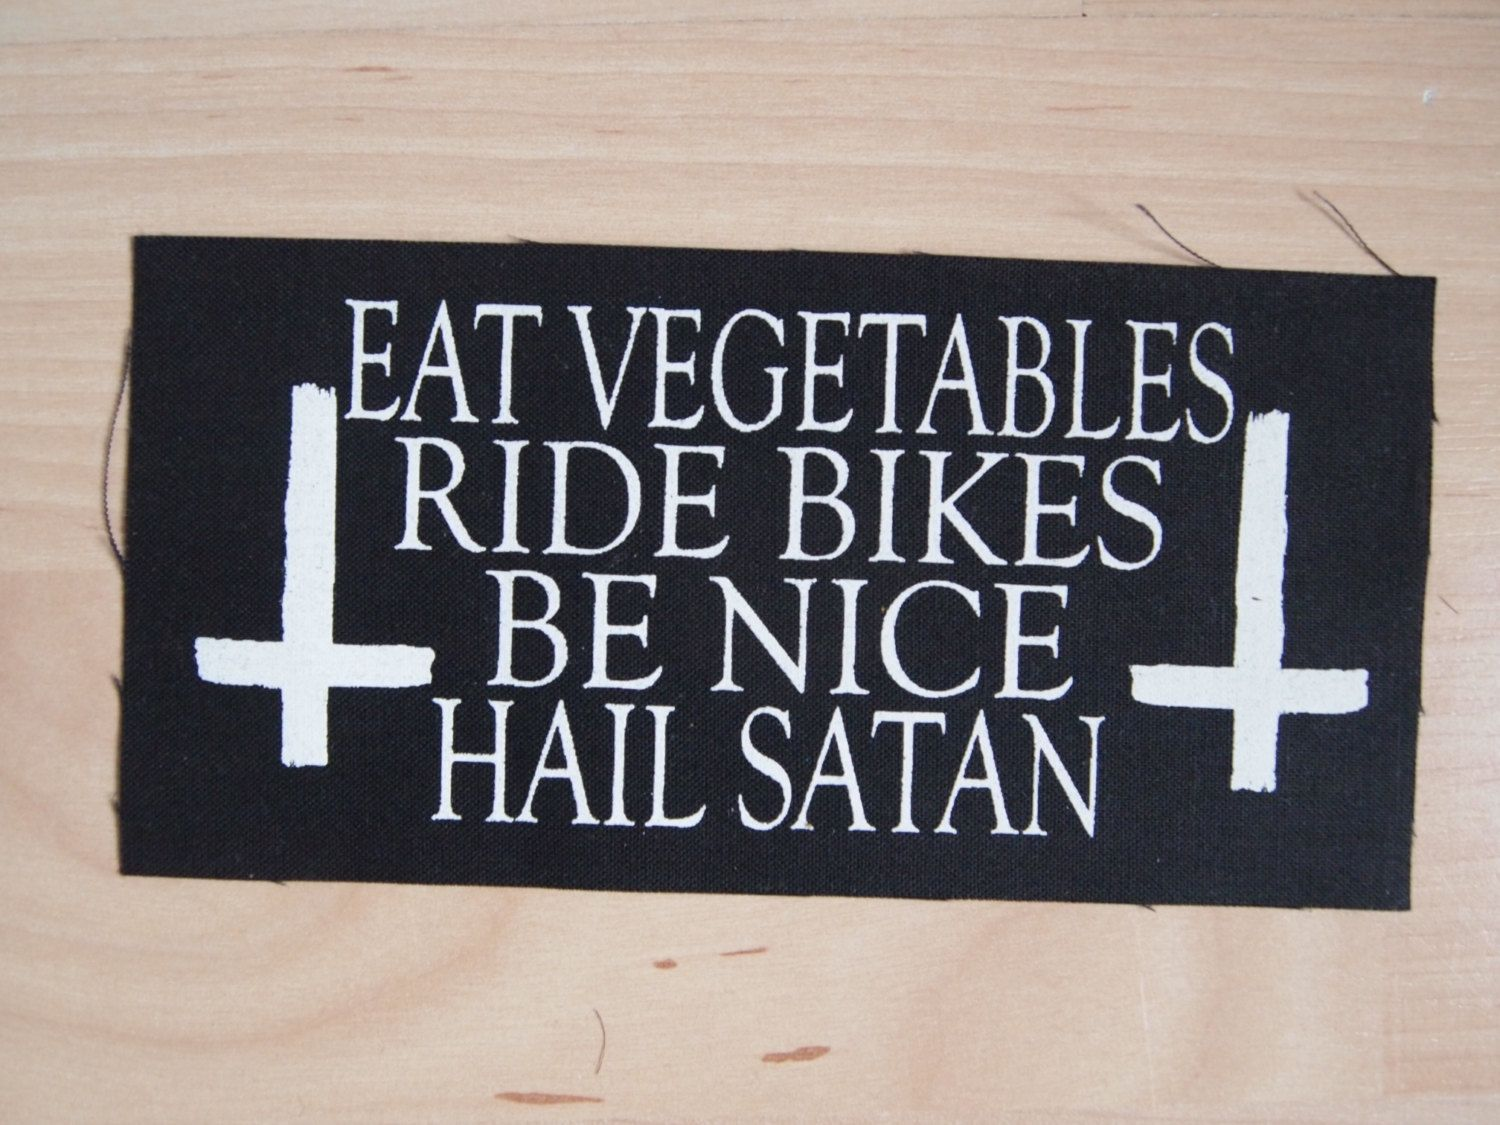 satan s counterfeit christianity places to eat vegetables ride bikes be nice hail satan fabric patch